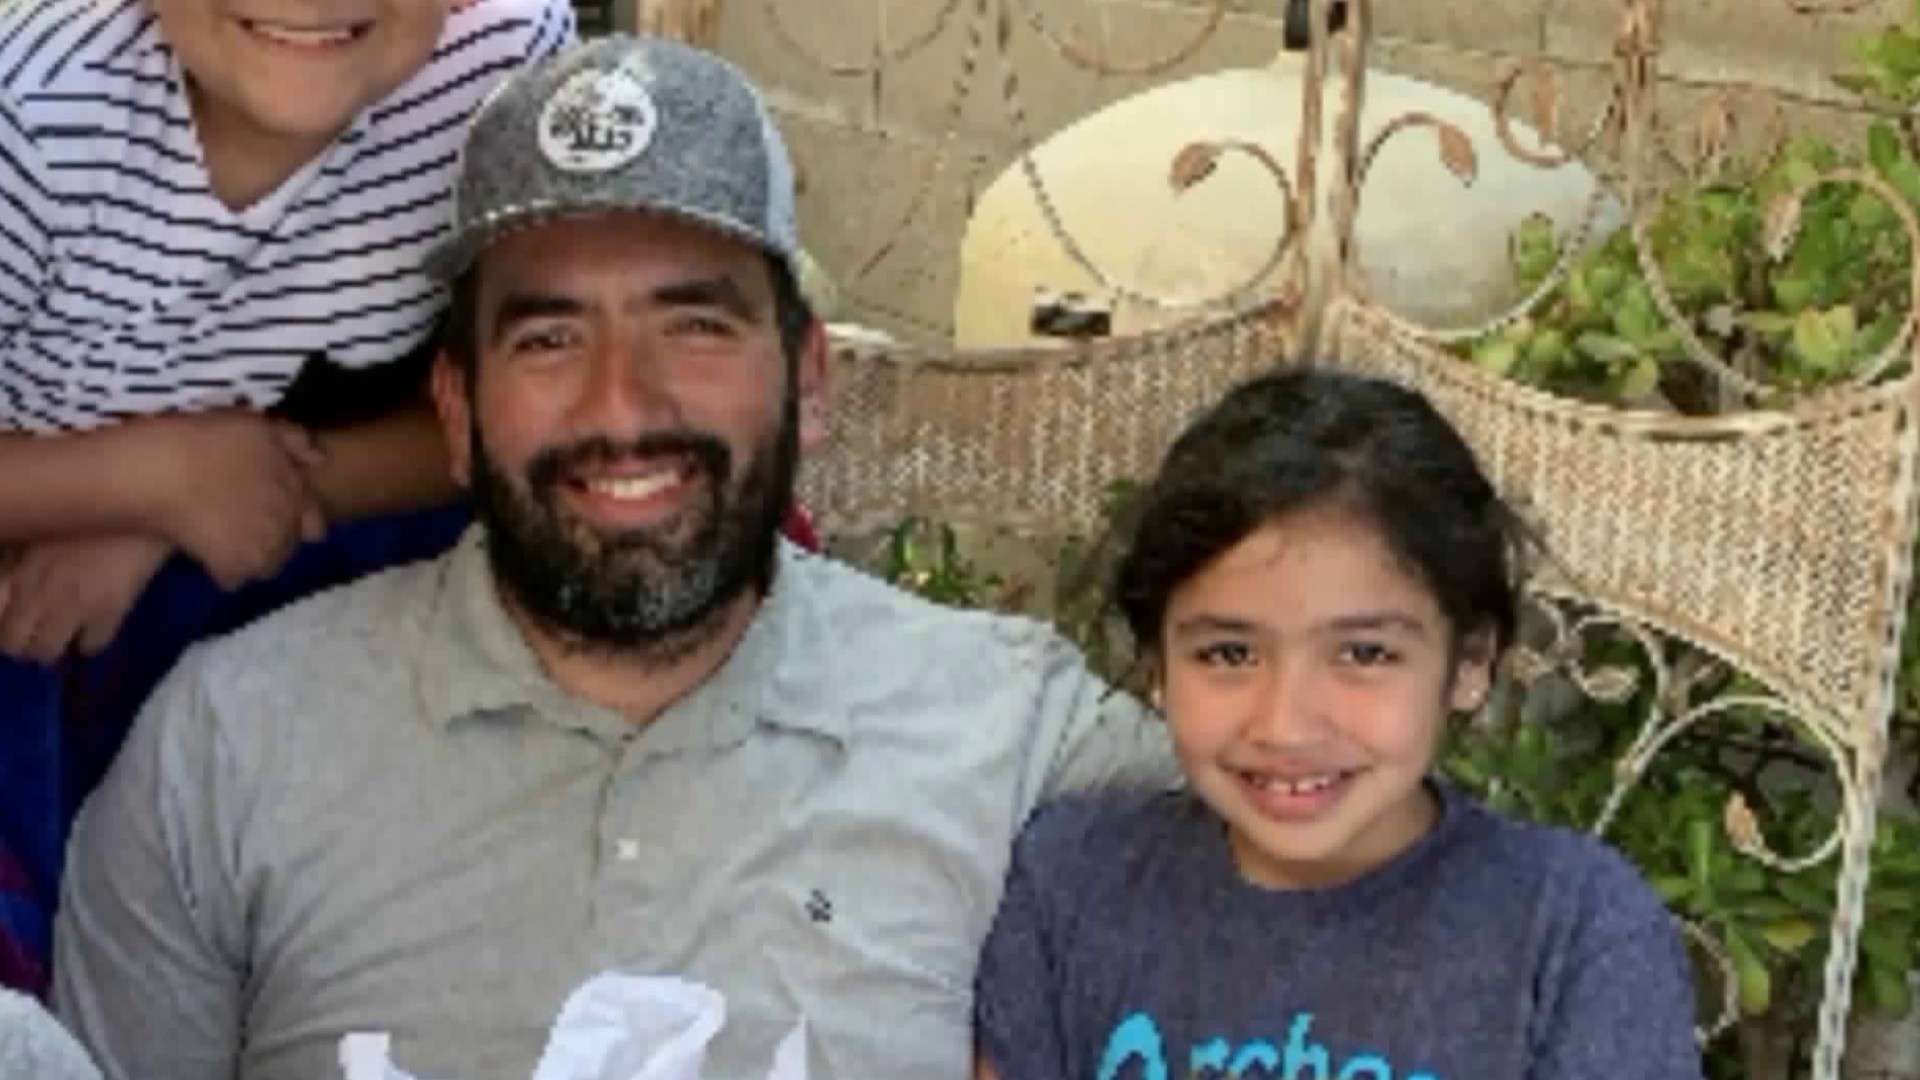 Jose DeJesus Berrelleza and his daughter are seen in a family photo.